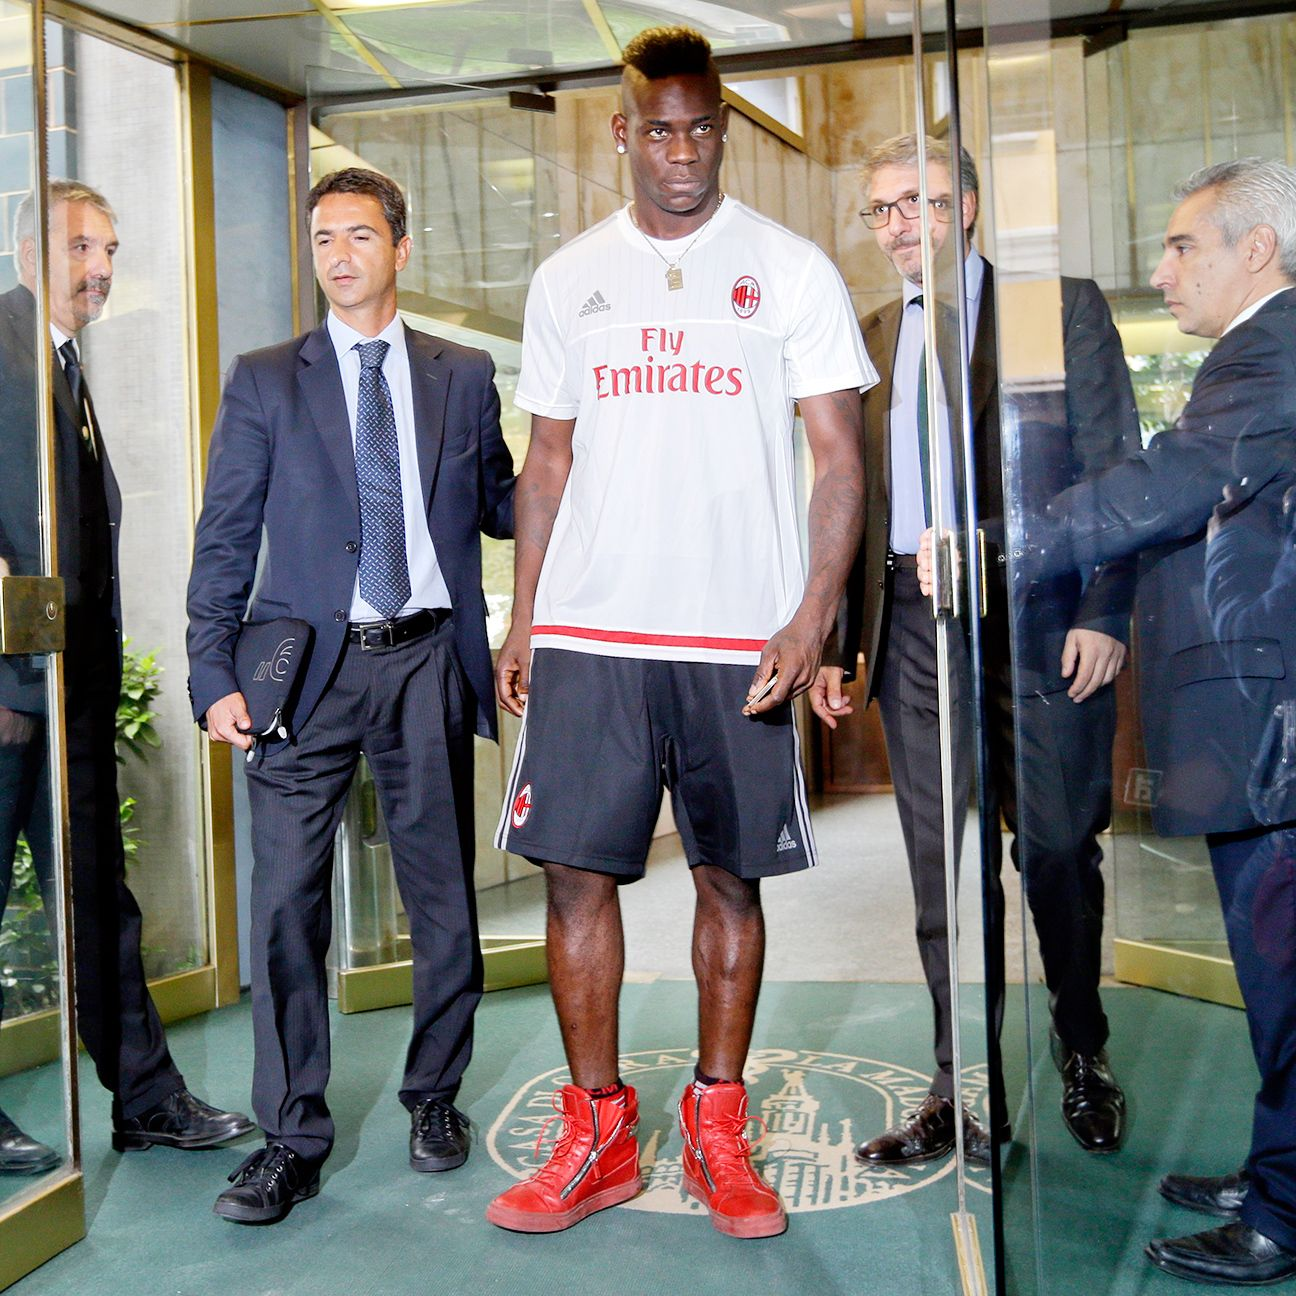 Mario Balotelli was the focal point of Milan's attack in his first stint with the club, but his new role in his Rossoneri return is yet to be defined.